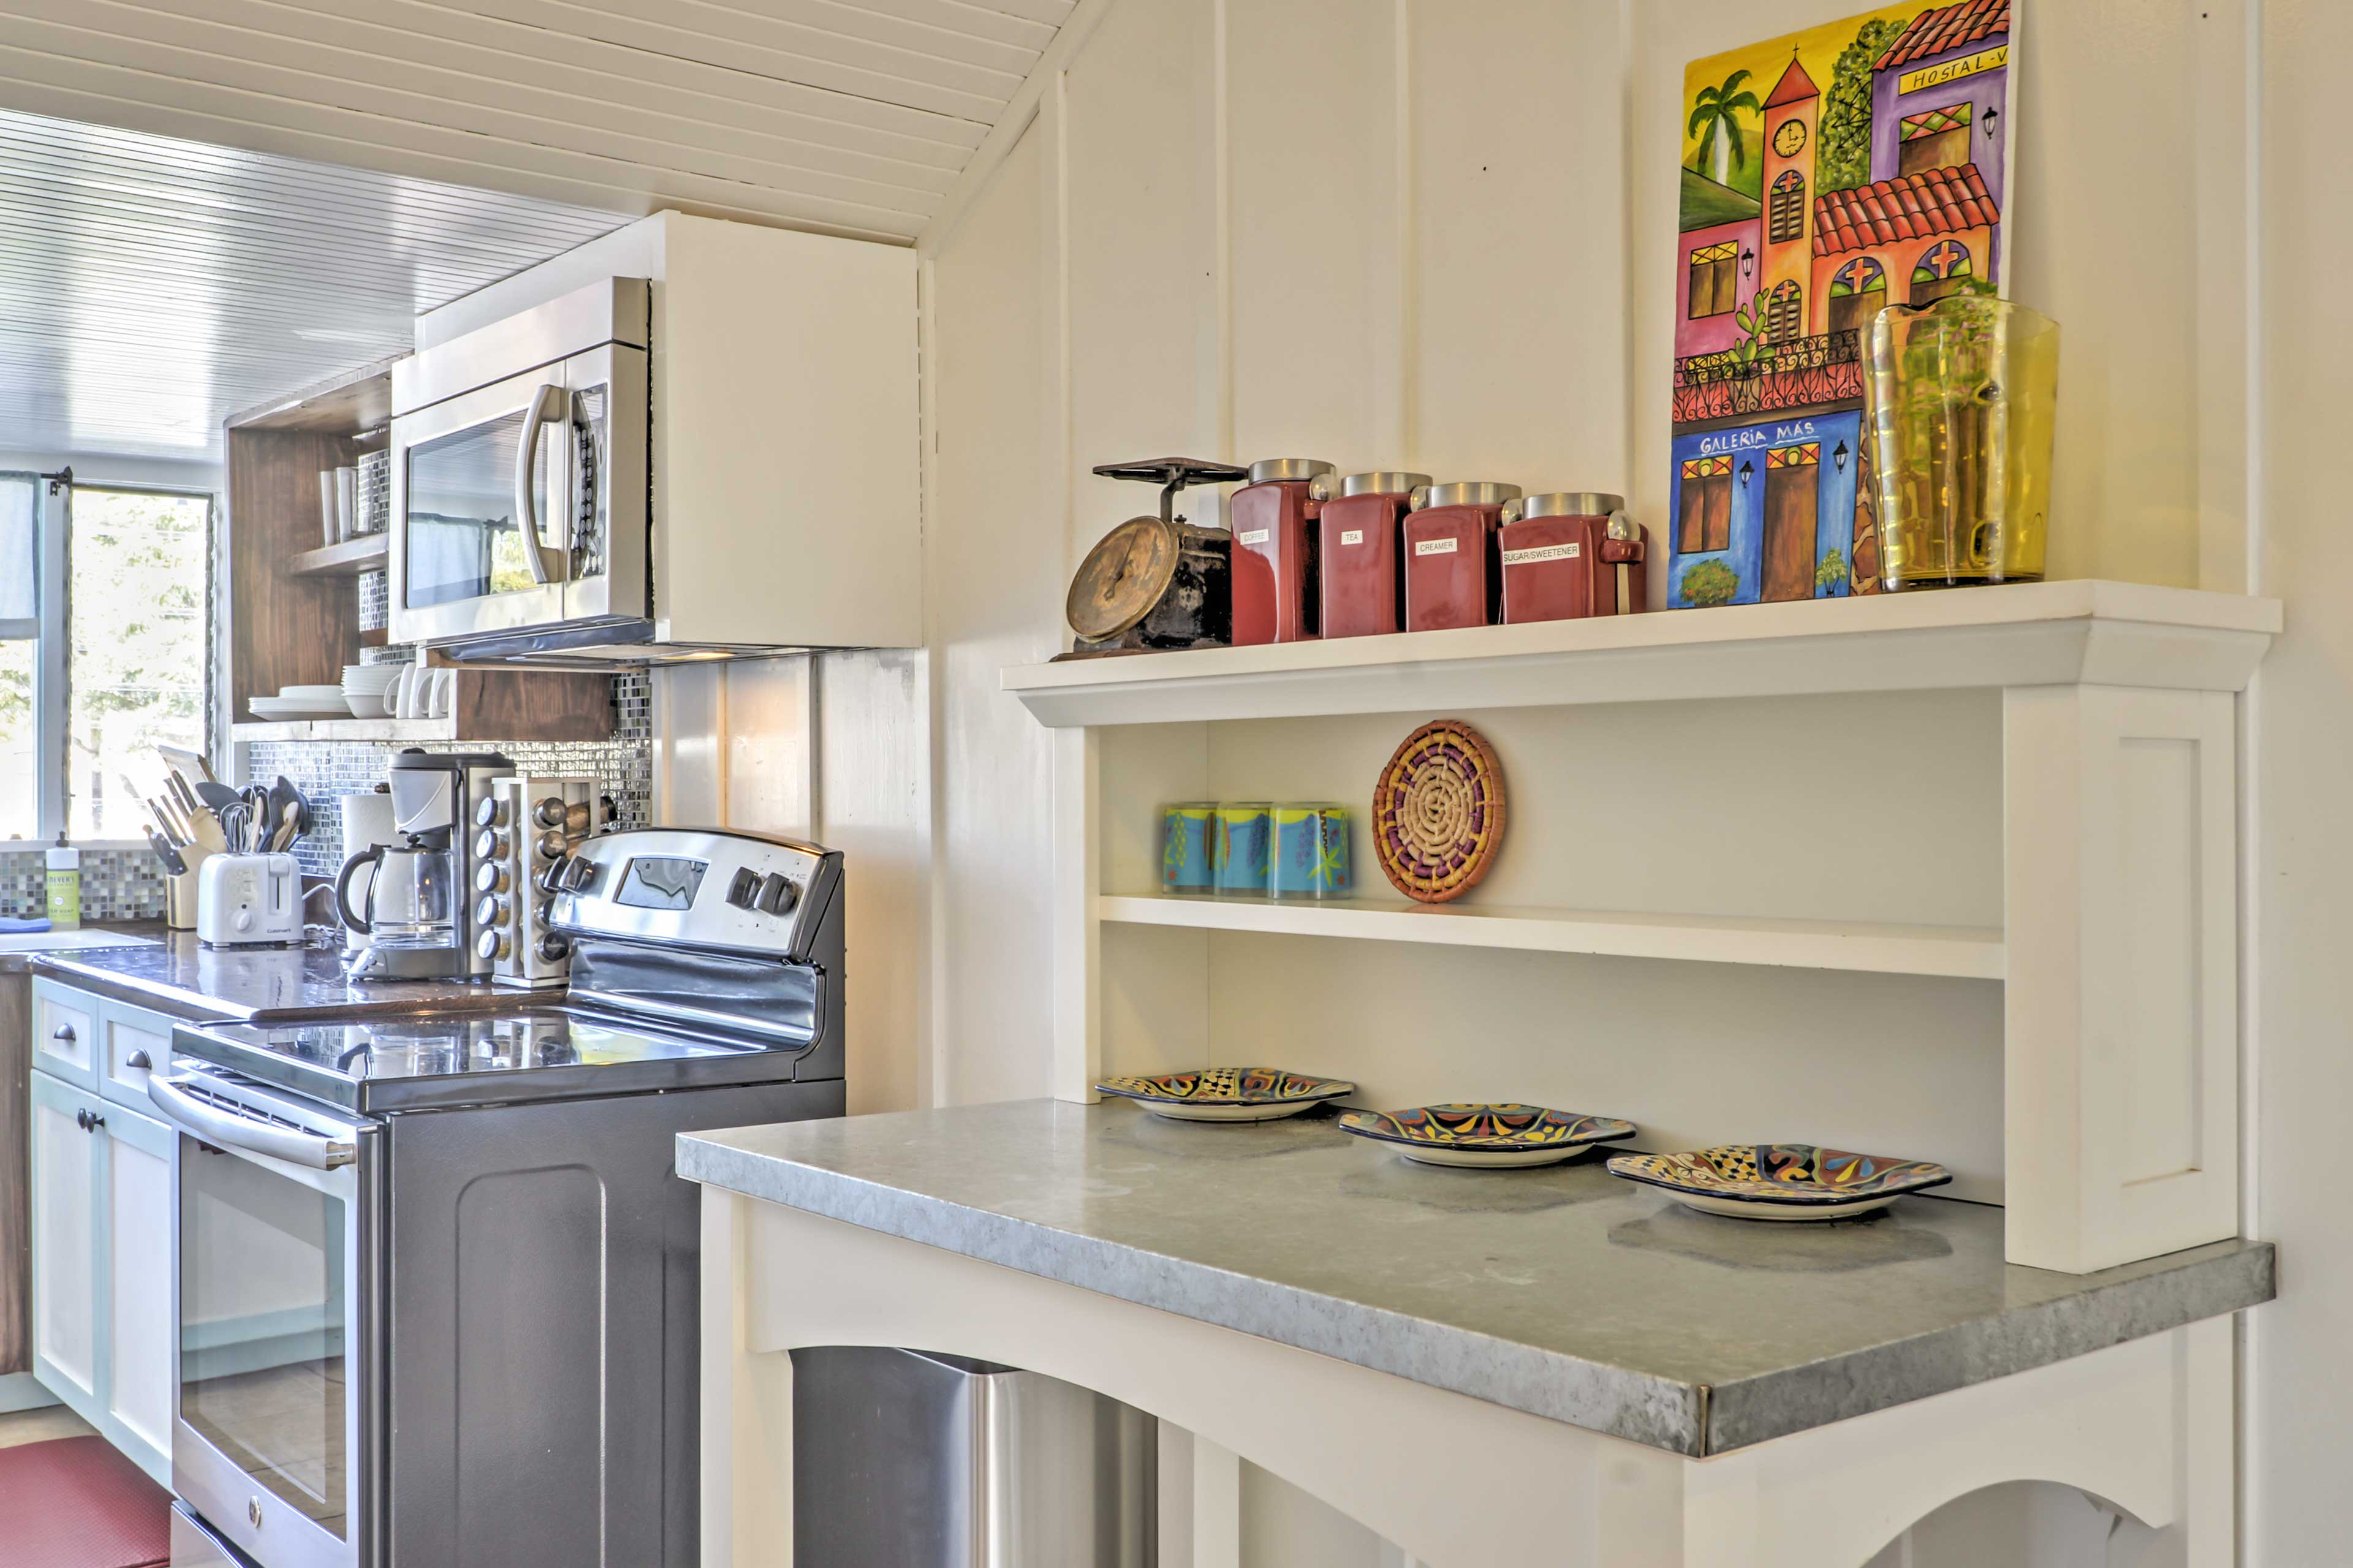 This kitchen has all the culinary essentials of home!